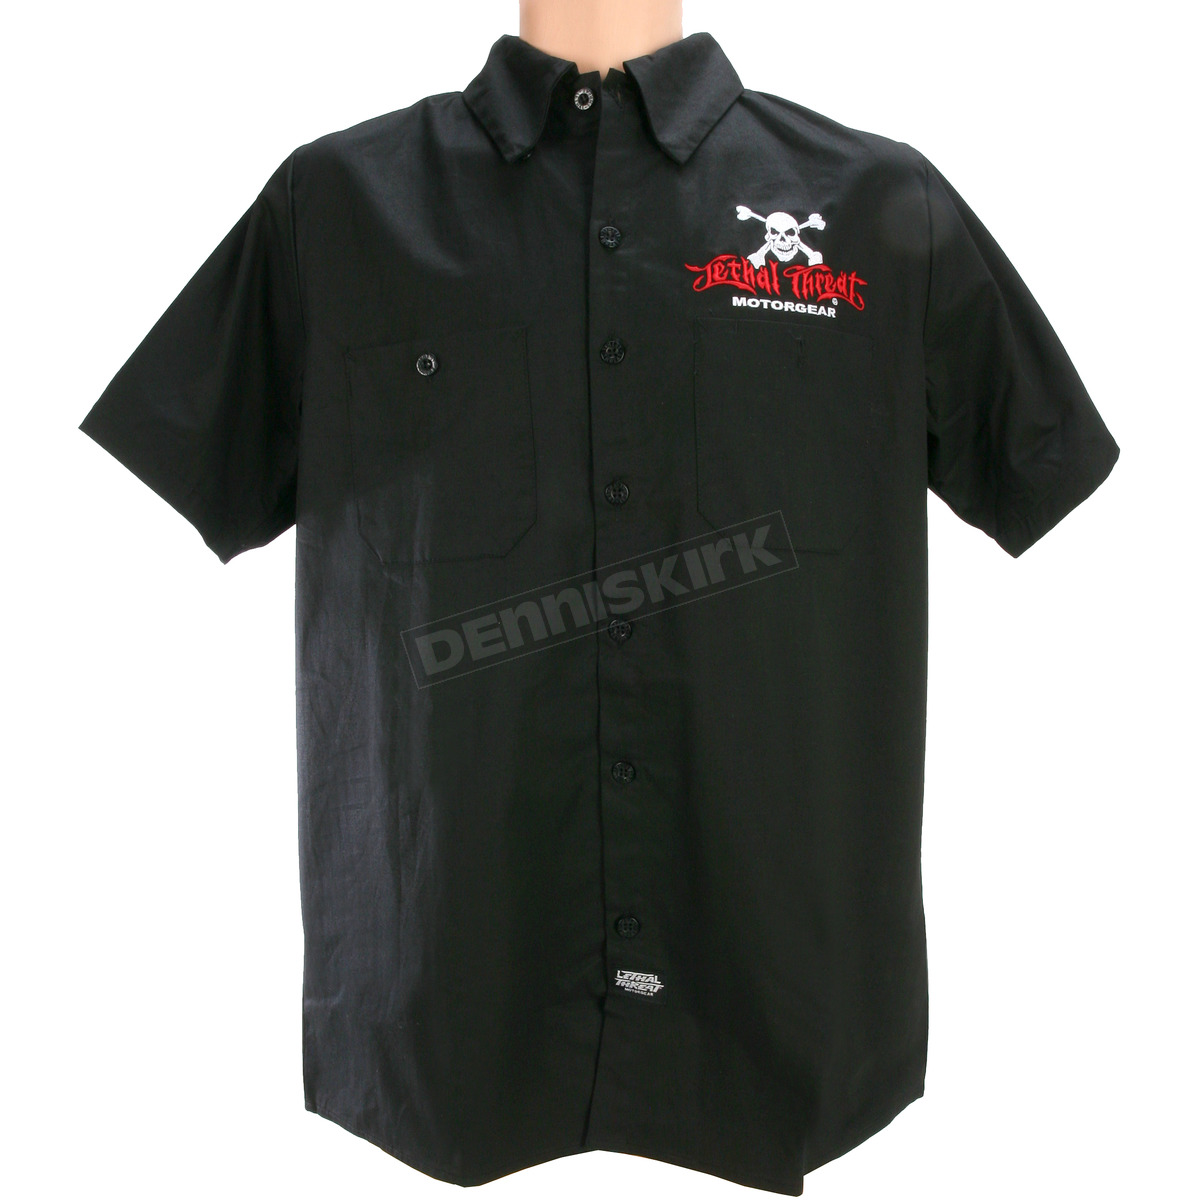 Lethal threat motorcycles embroidered work shirt